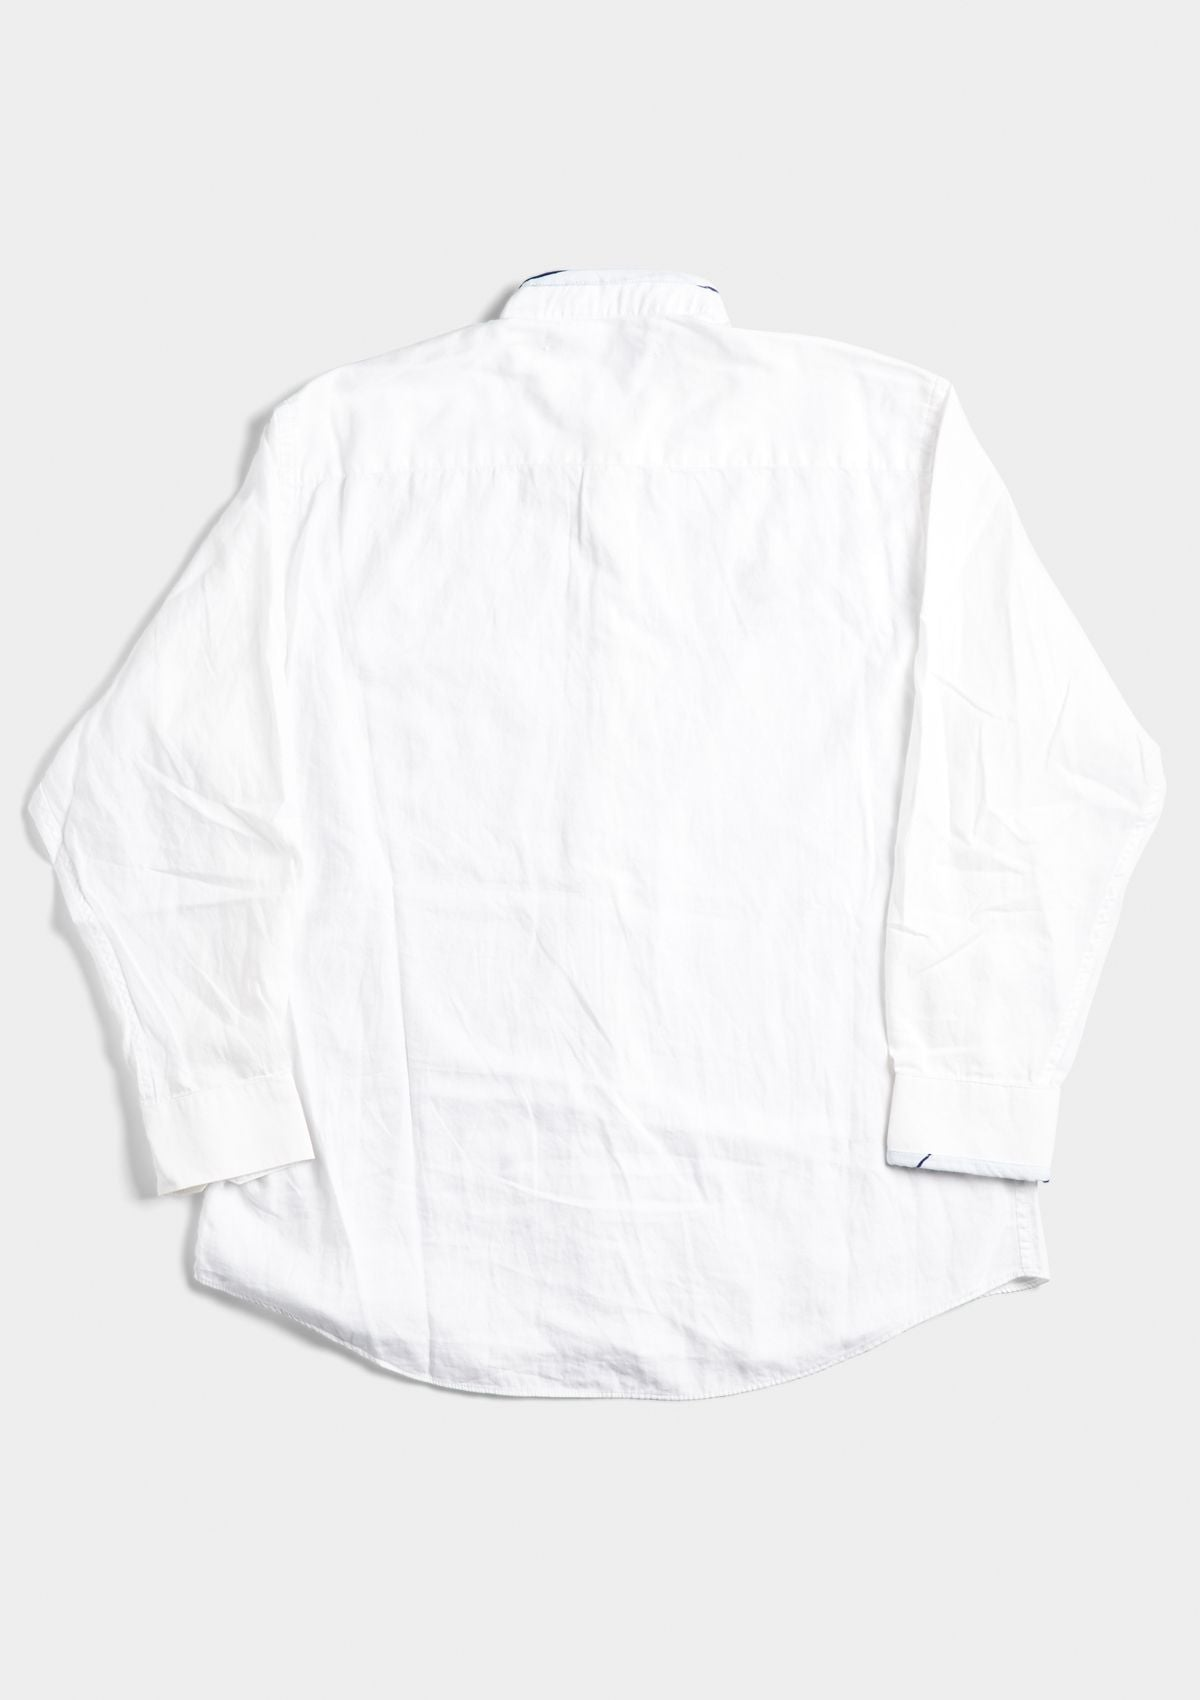 Atelier-&-Repairs-Nehru-Shirt